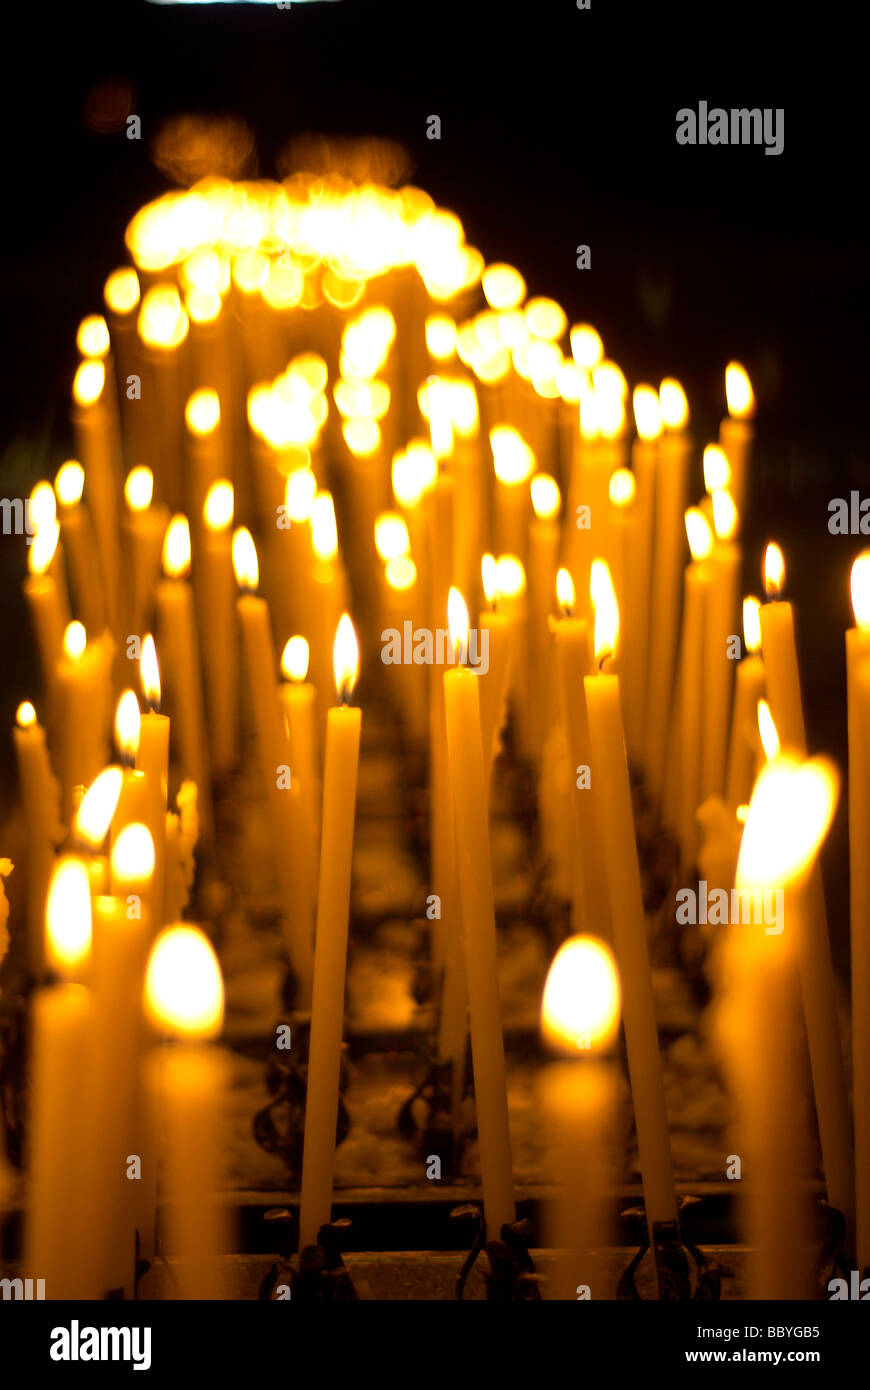 Votive candles burning in a church - Stock Image